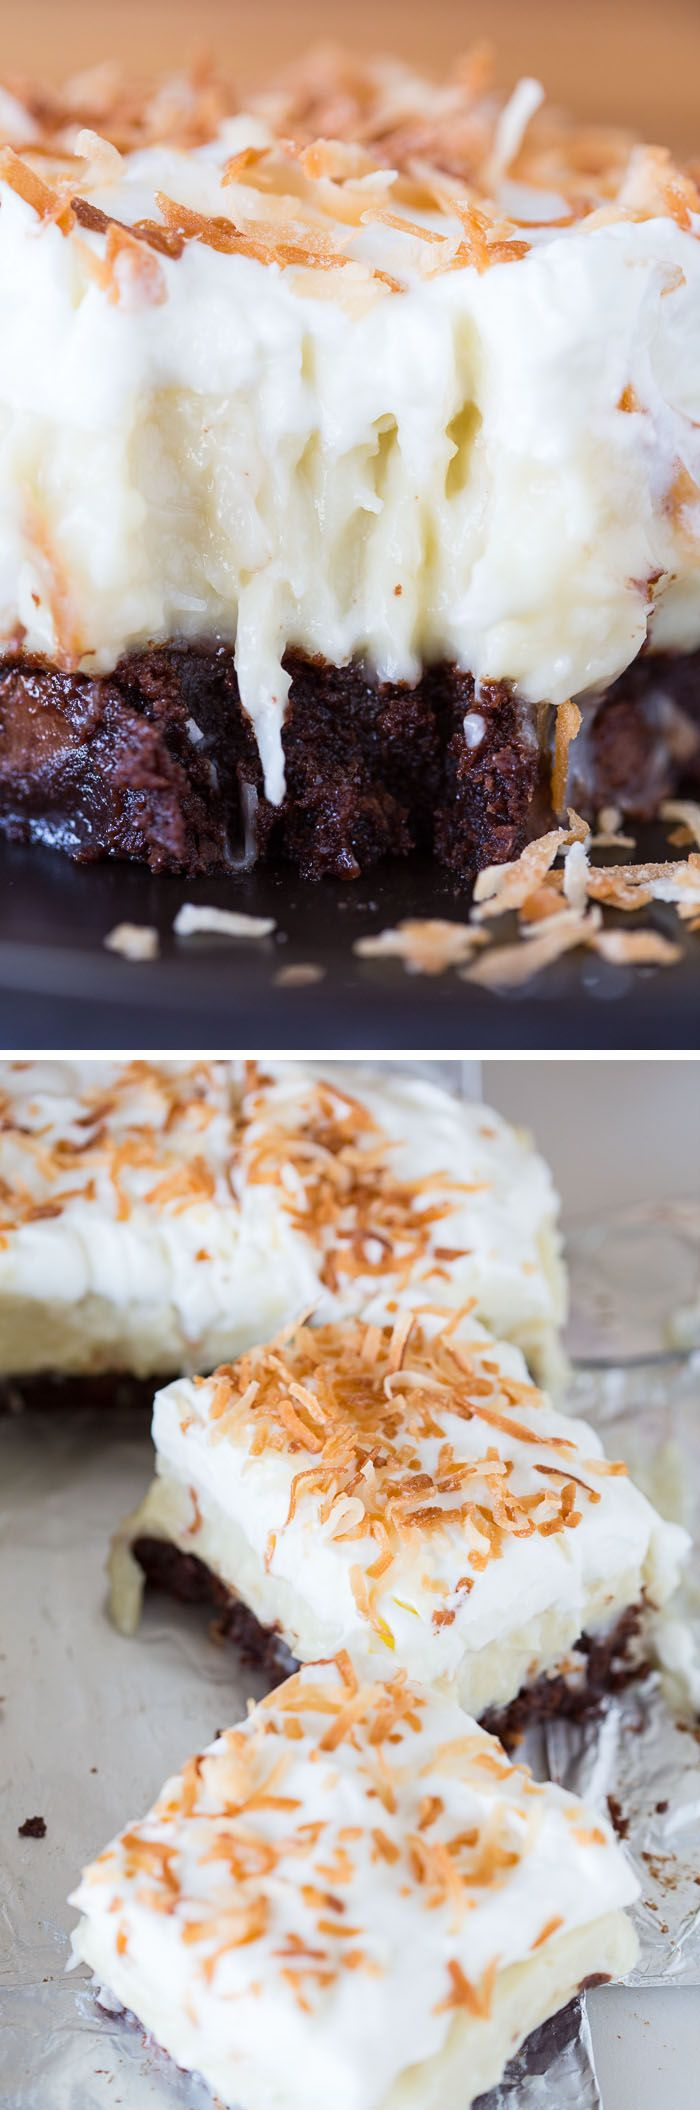 Coconut Cream Brownies | BROWNIES variados | Pinterest | Bocadillos ...